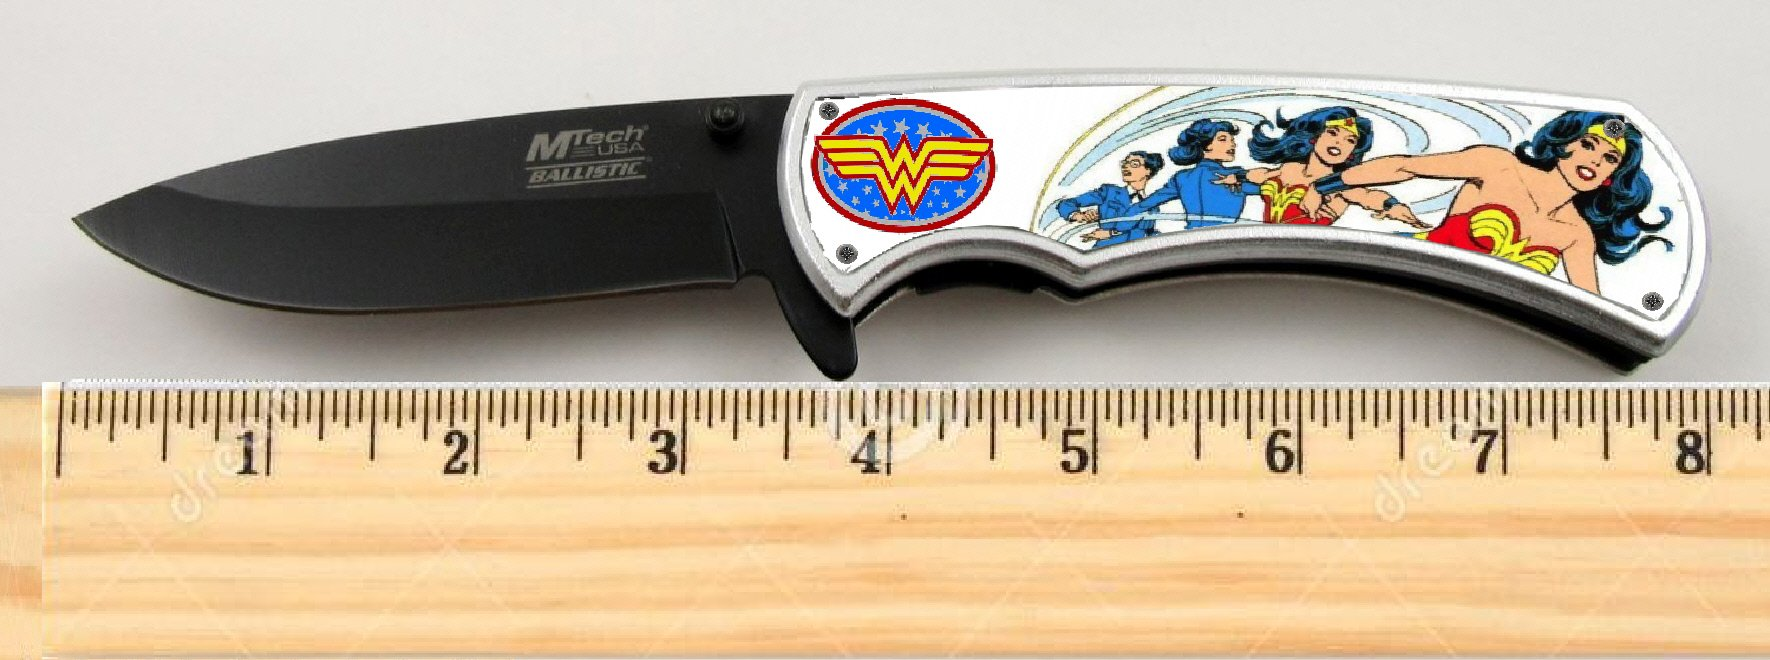 BAY GIFTS EXCLUSIVE Wonder Woman Limited Edition Tactical Spring Assisted Knife 4.5'' when closed with clip